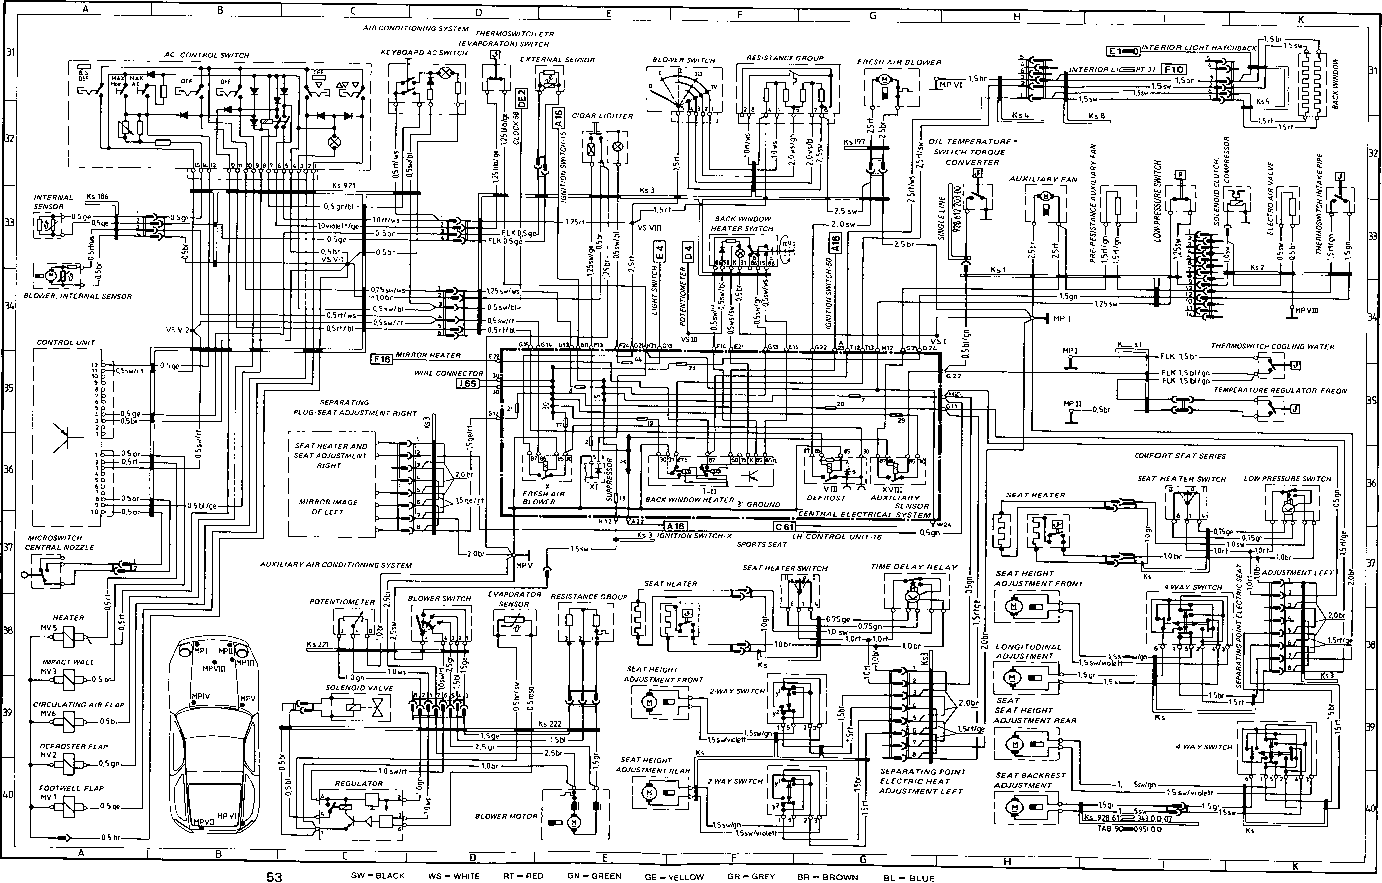 Porsche 993 Turbo Flow Diagram Car Wiring Diagrams Explained 911 991 Gt2rs Central Electrical System Rear End 1983 928s Wire Center U2022 Rh 107 191 48 154